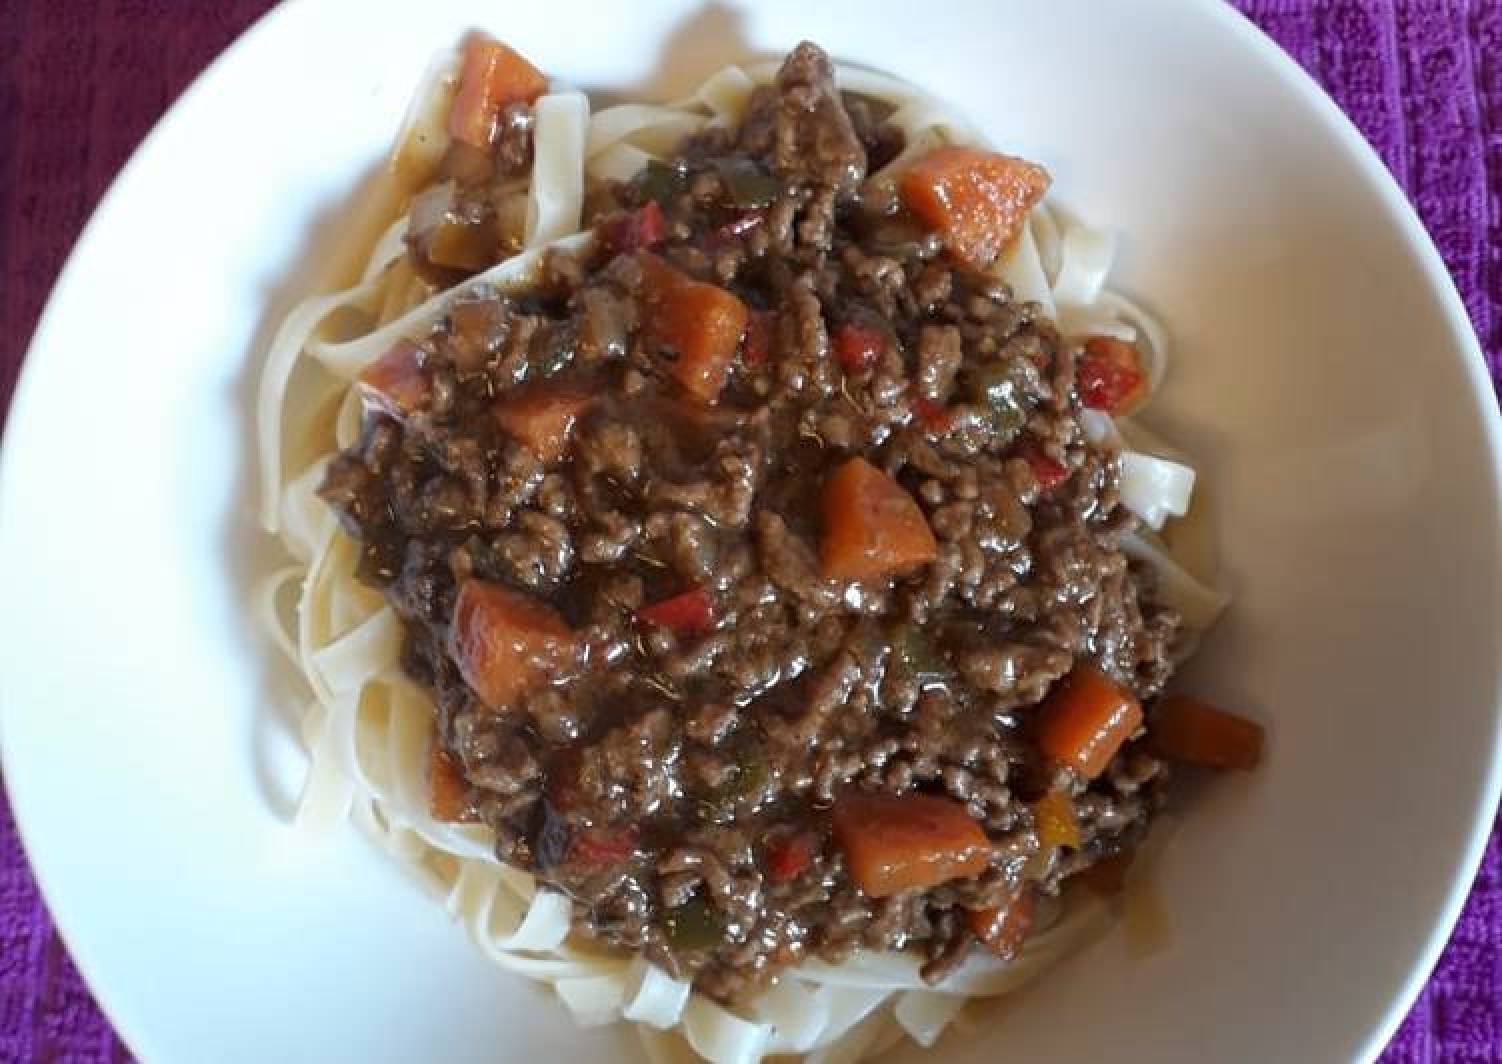 Linguine with beef mince and peppers